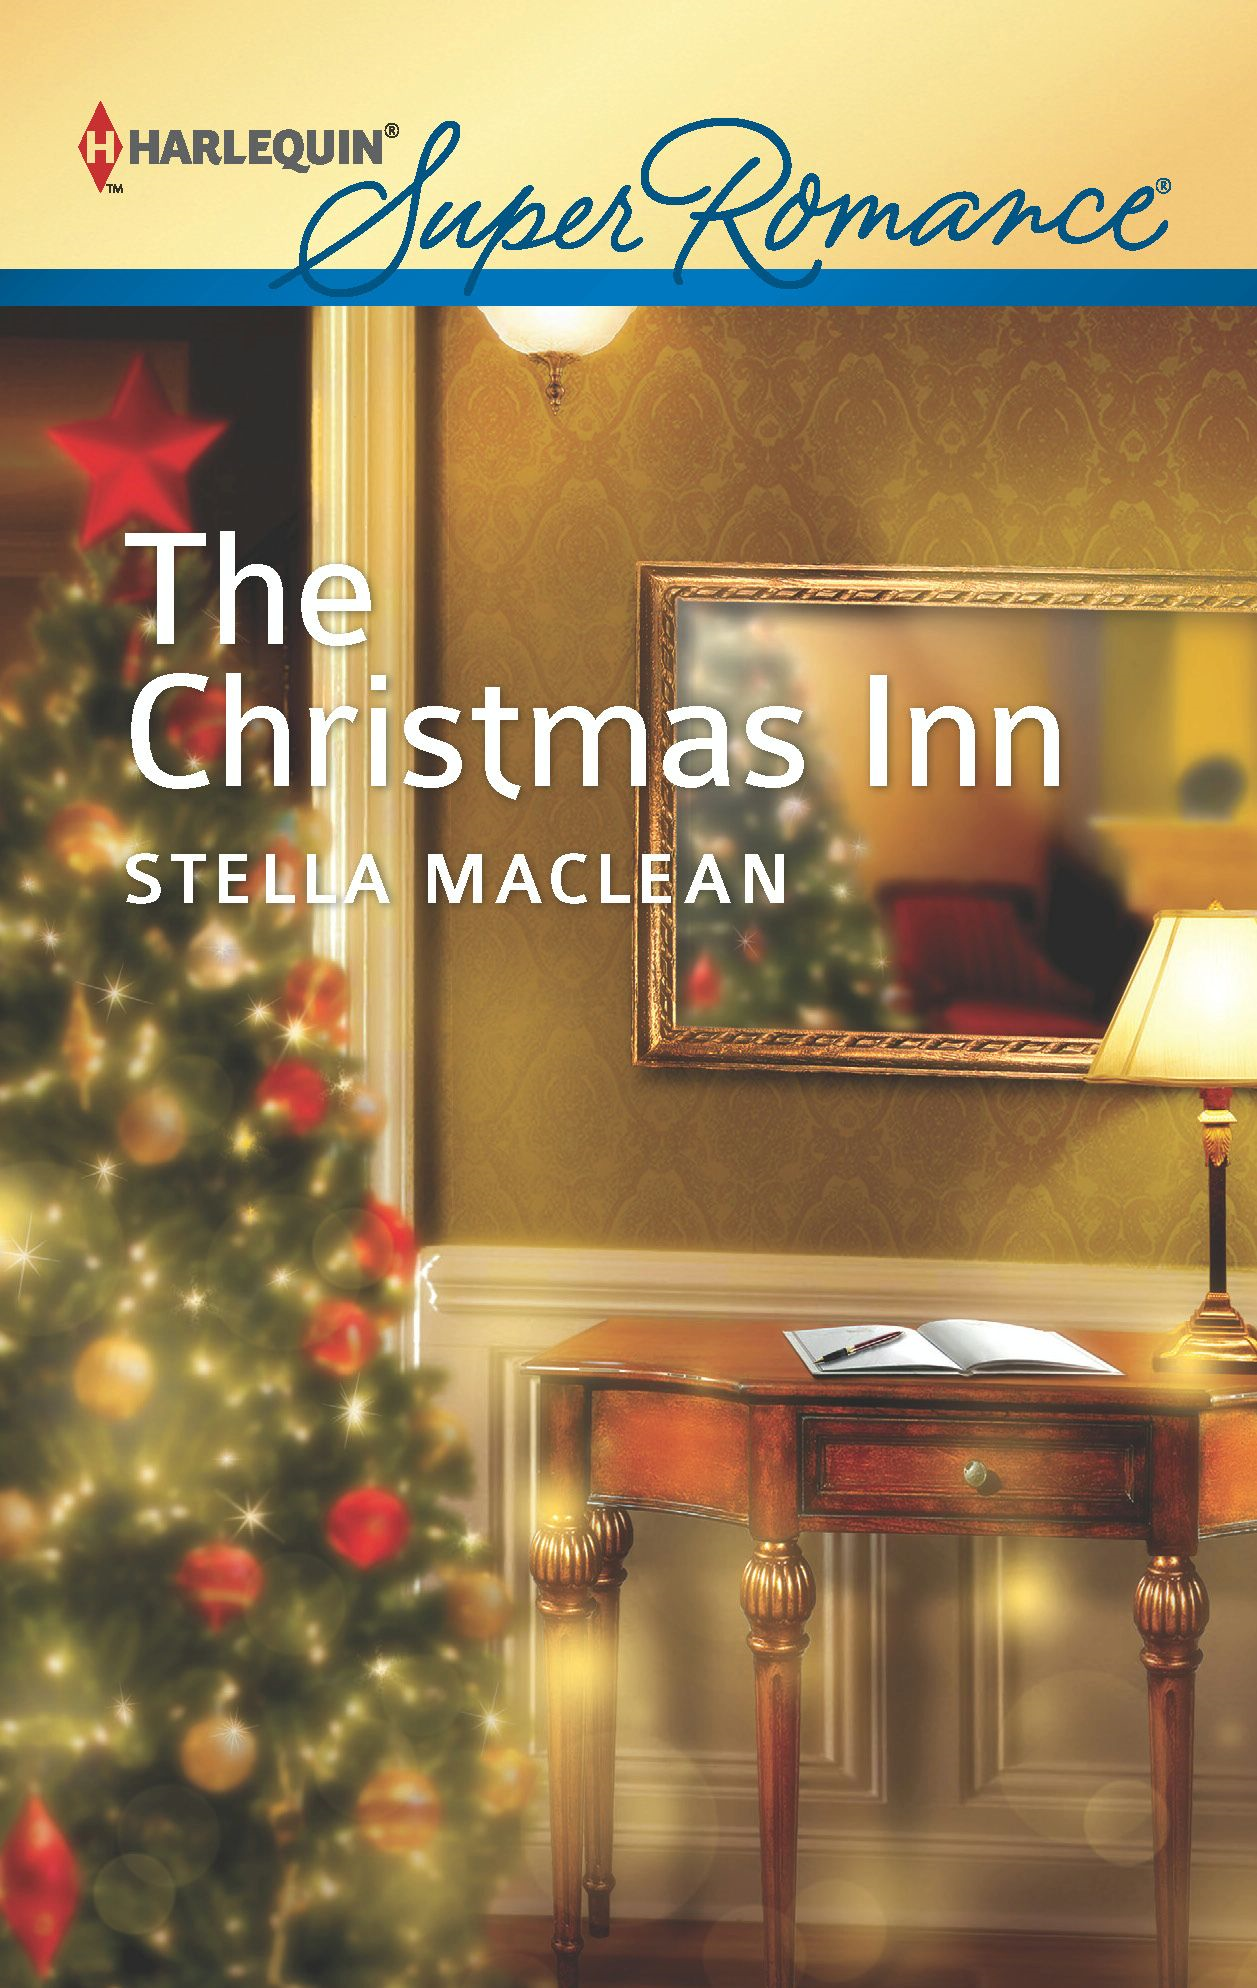 The Christmas Inn